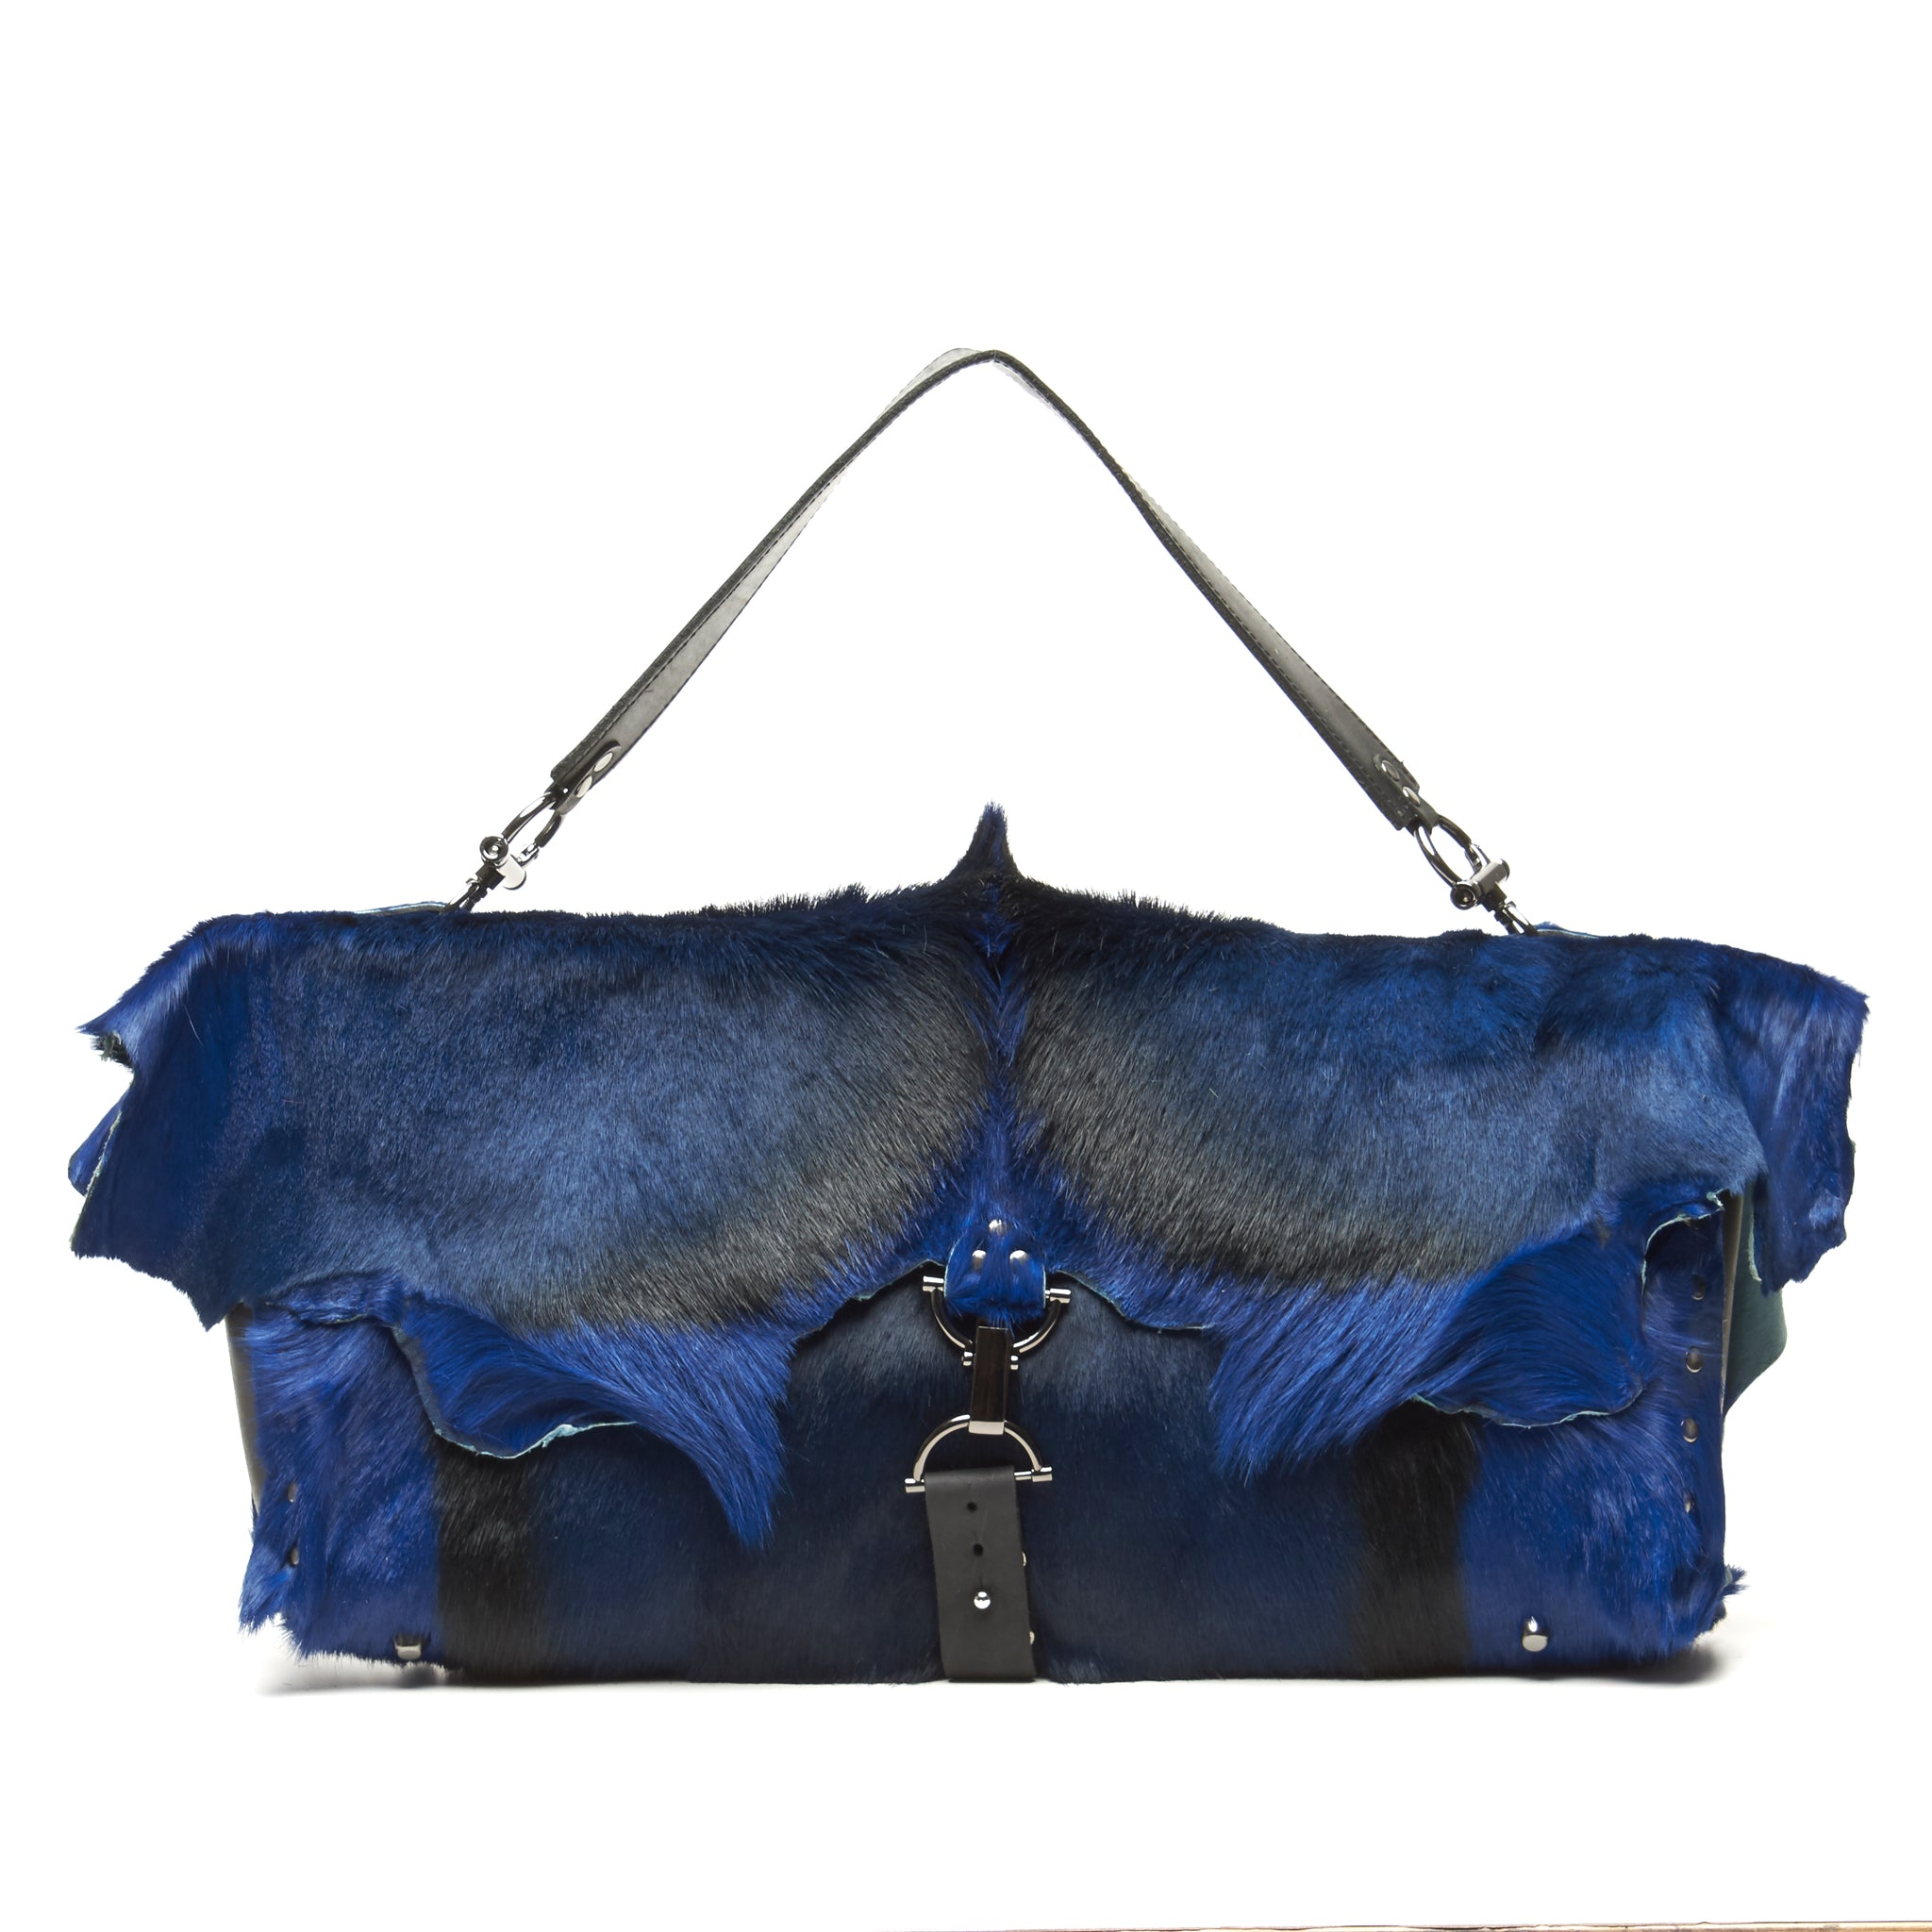 BRIGHTLY DYED SPRINGBOK OVERSIZED BAG BY NYET JEWELRY